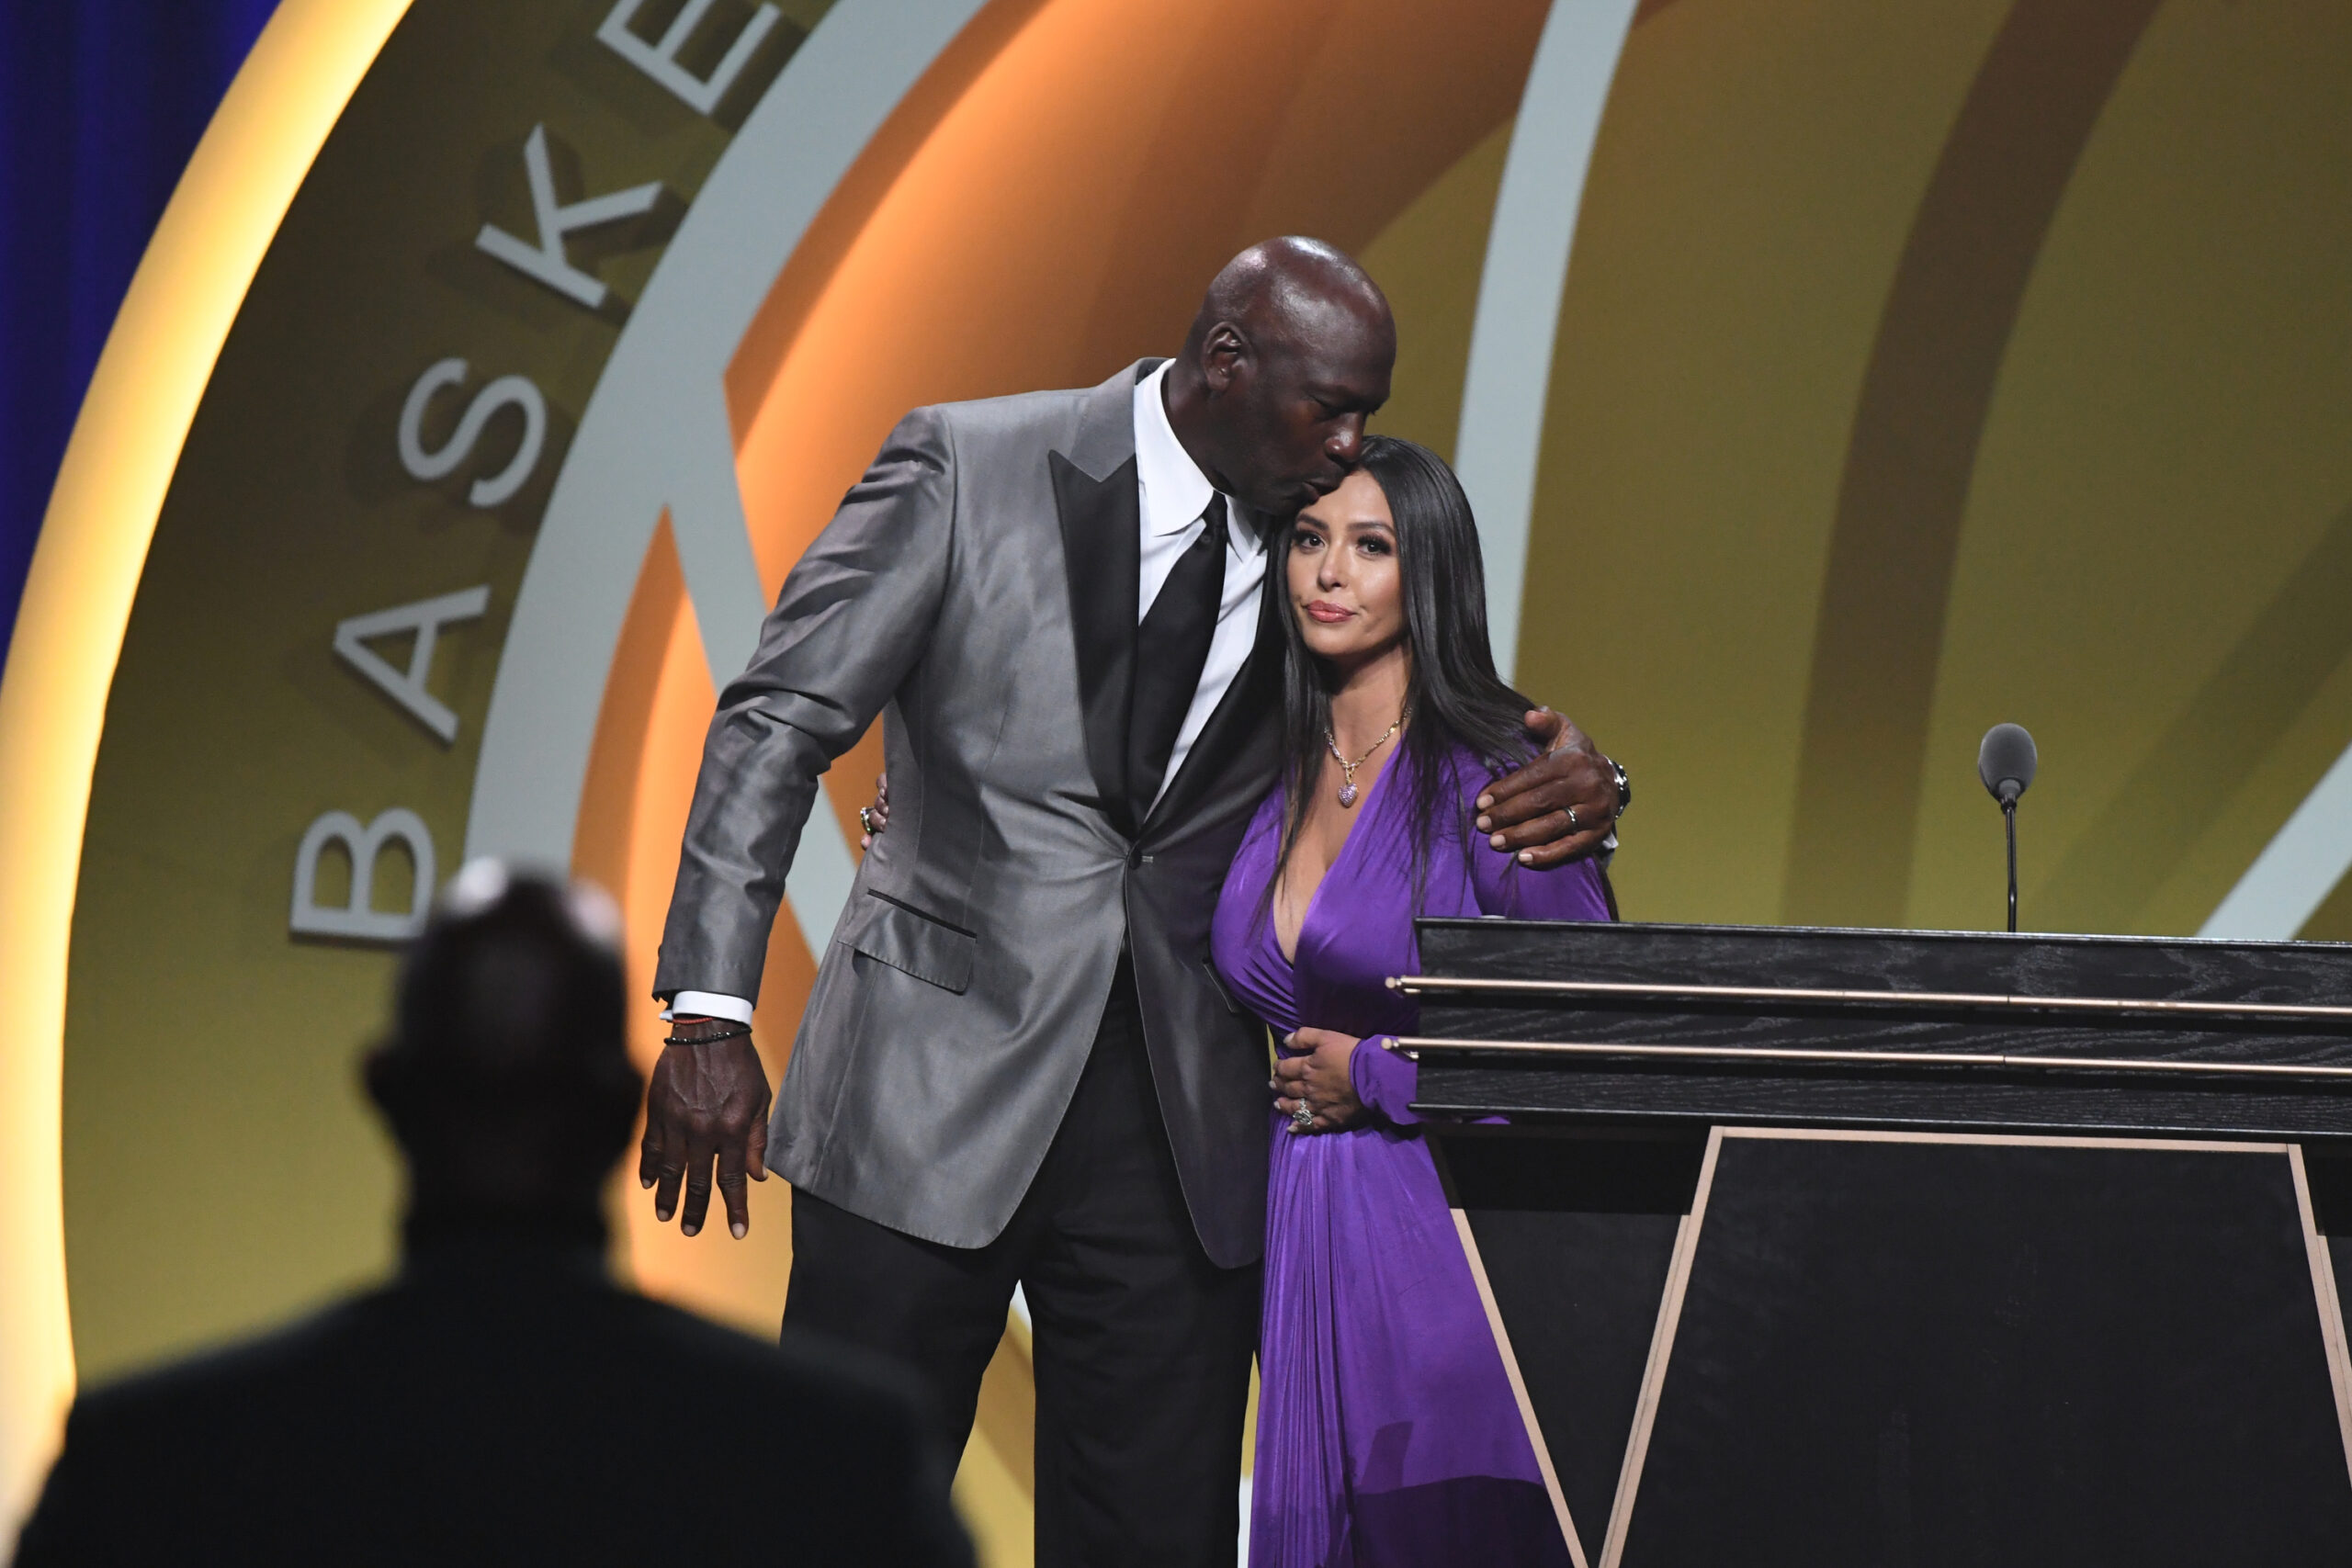 Vanessa Bryant's speech compounds emotion at 2020 Hall of Fame enshrinement